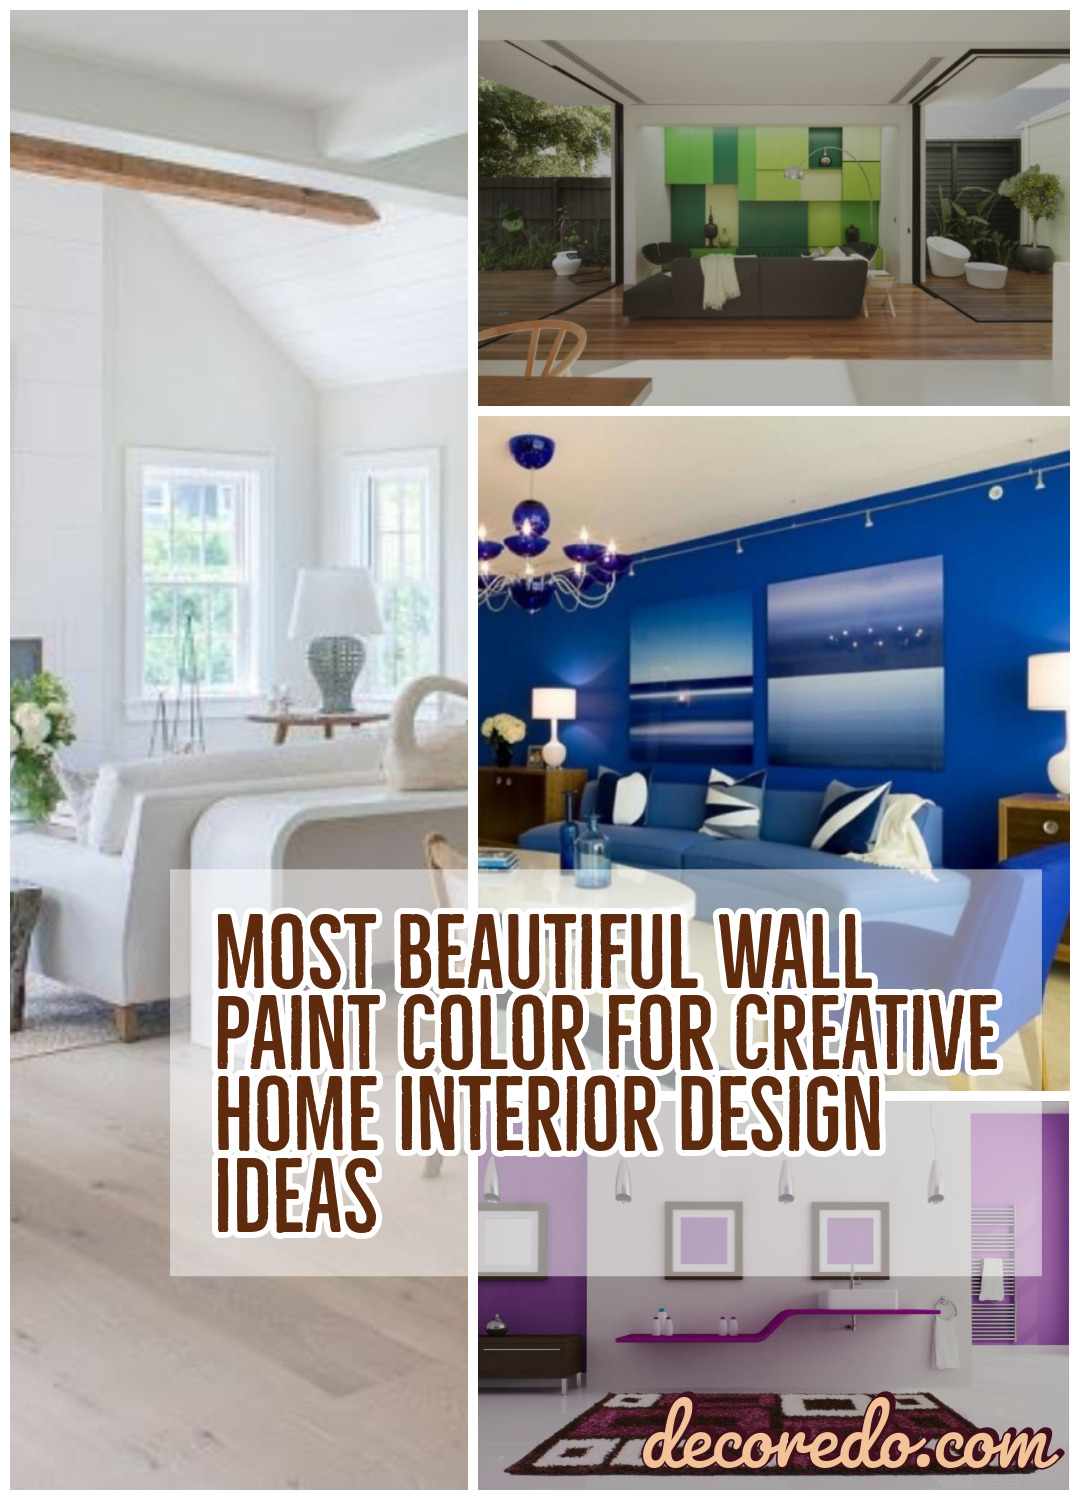 Most Beautiful Wall Paint Color For Creative Home Interior Design Ideas